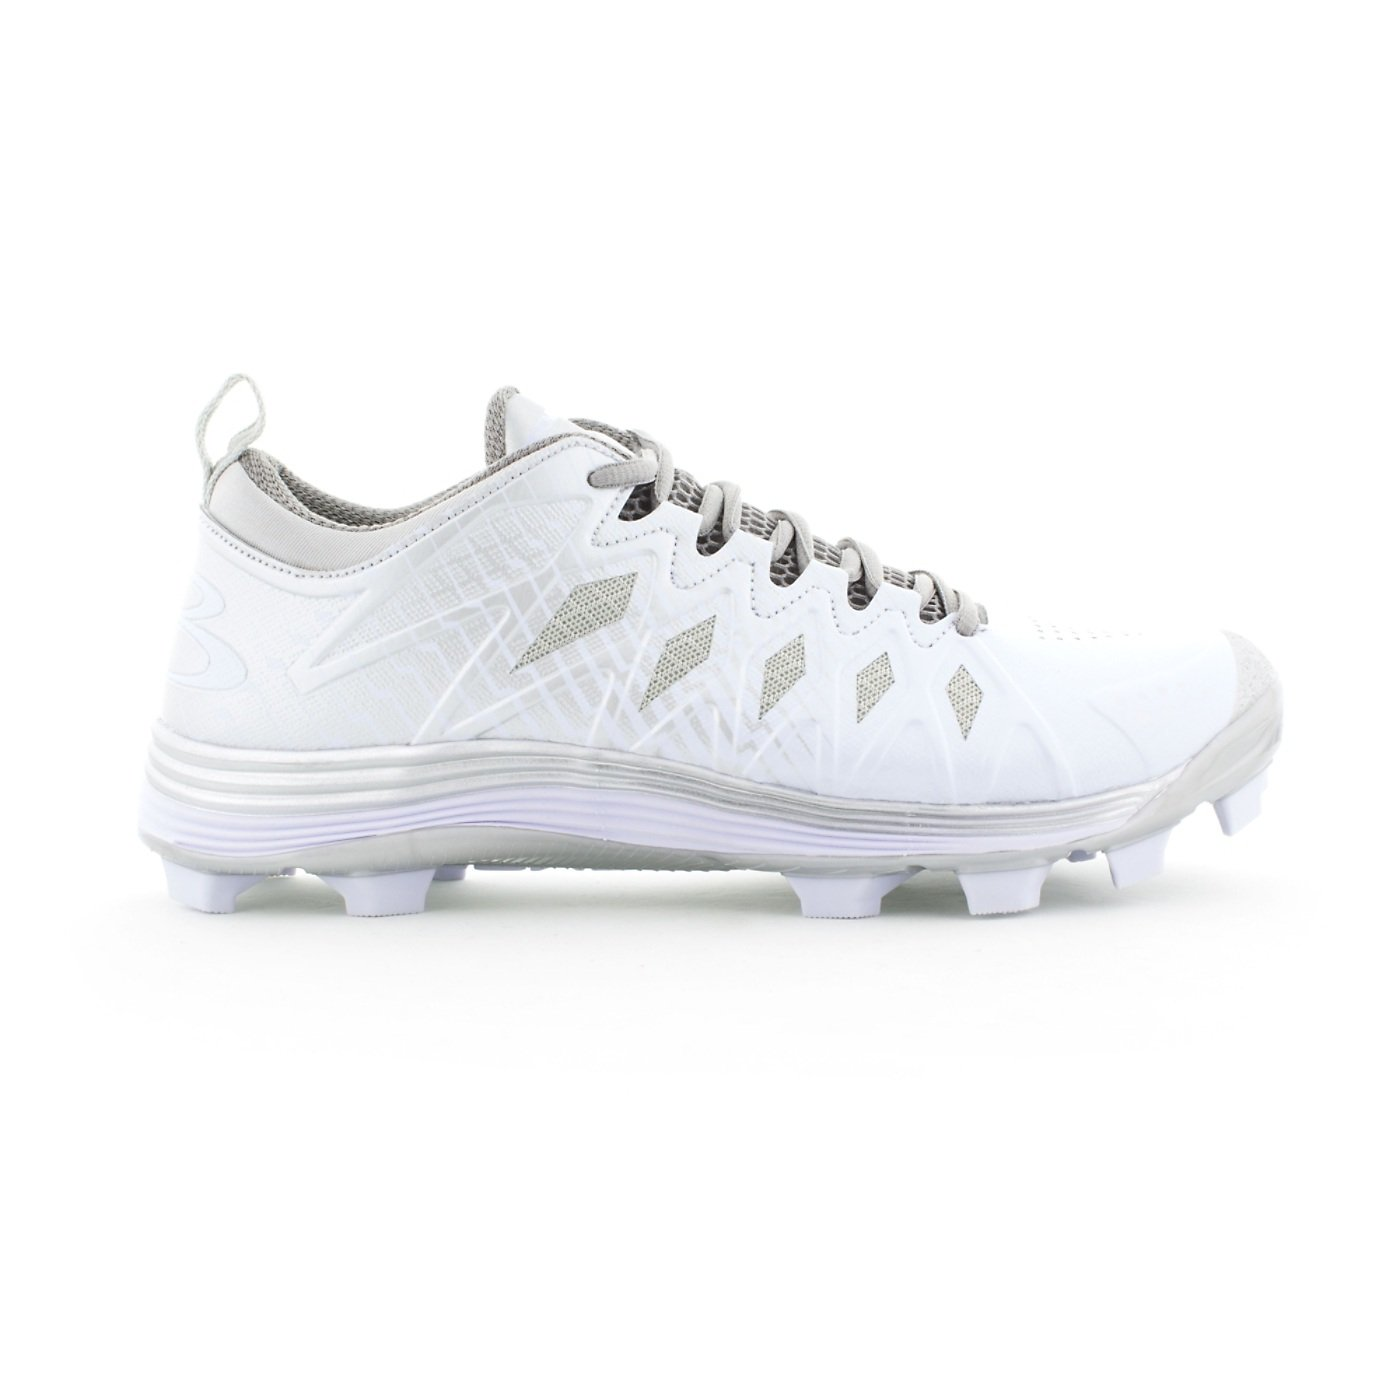 Boombah Men's Squadron Molded Cleats - 8 Color Options - Multiple Sizes B076637F6P 9|Silver/White